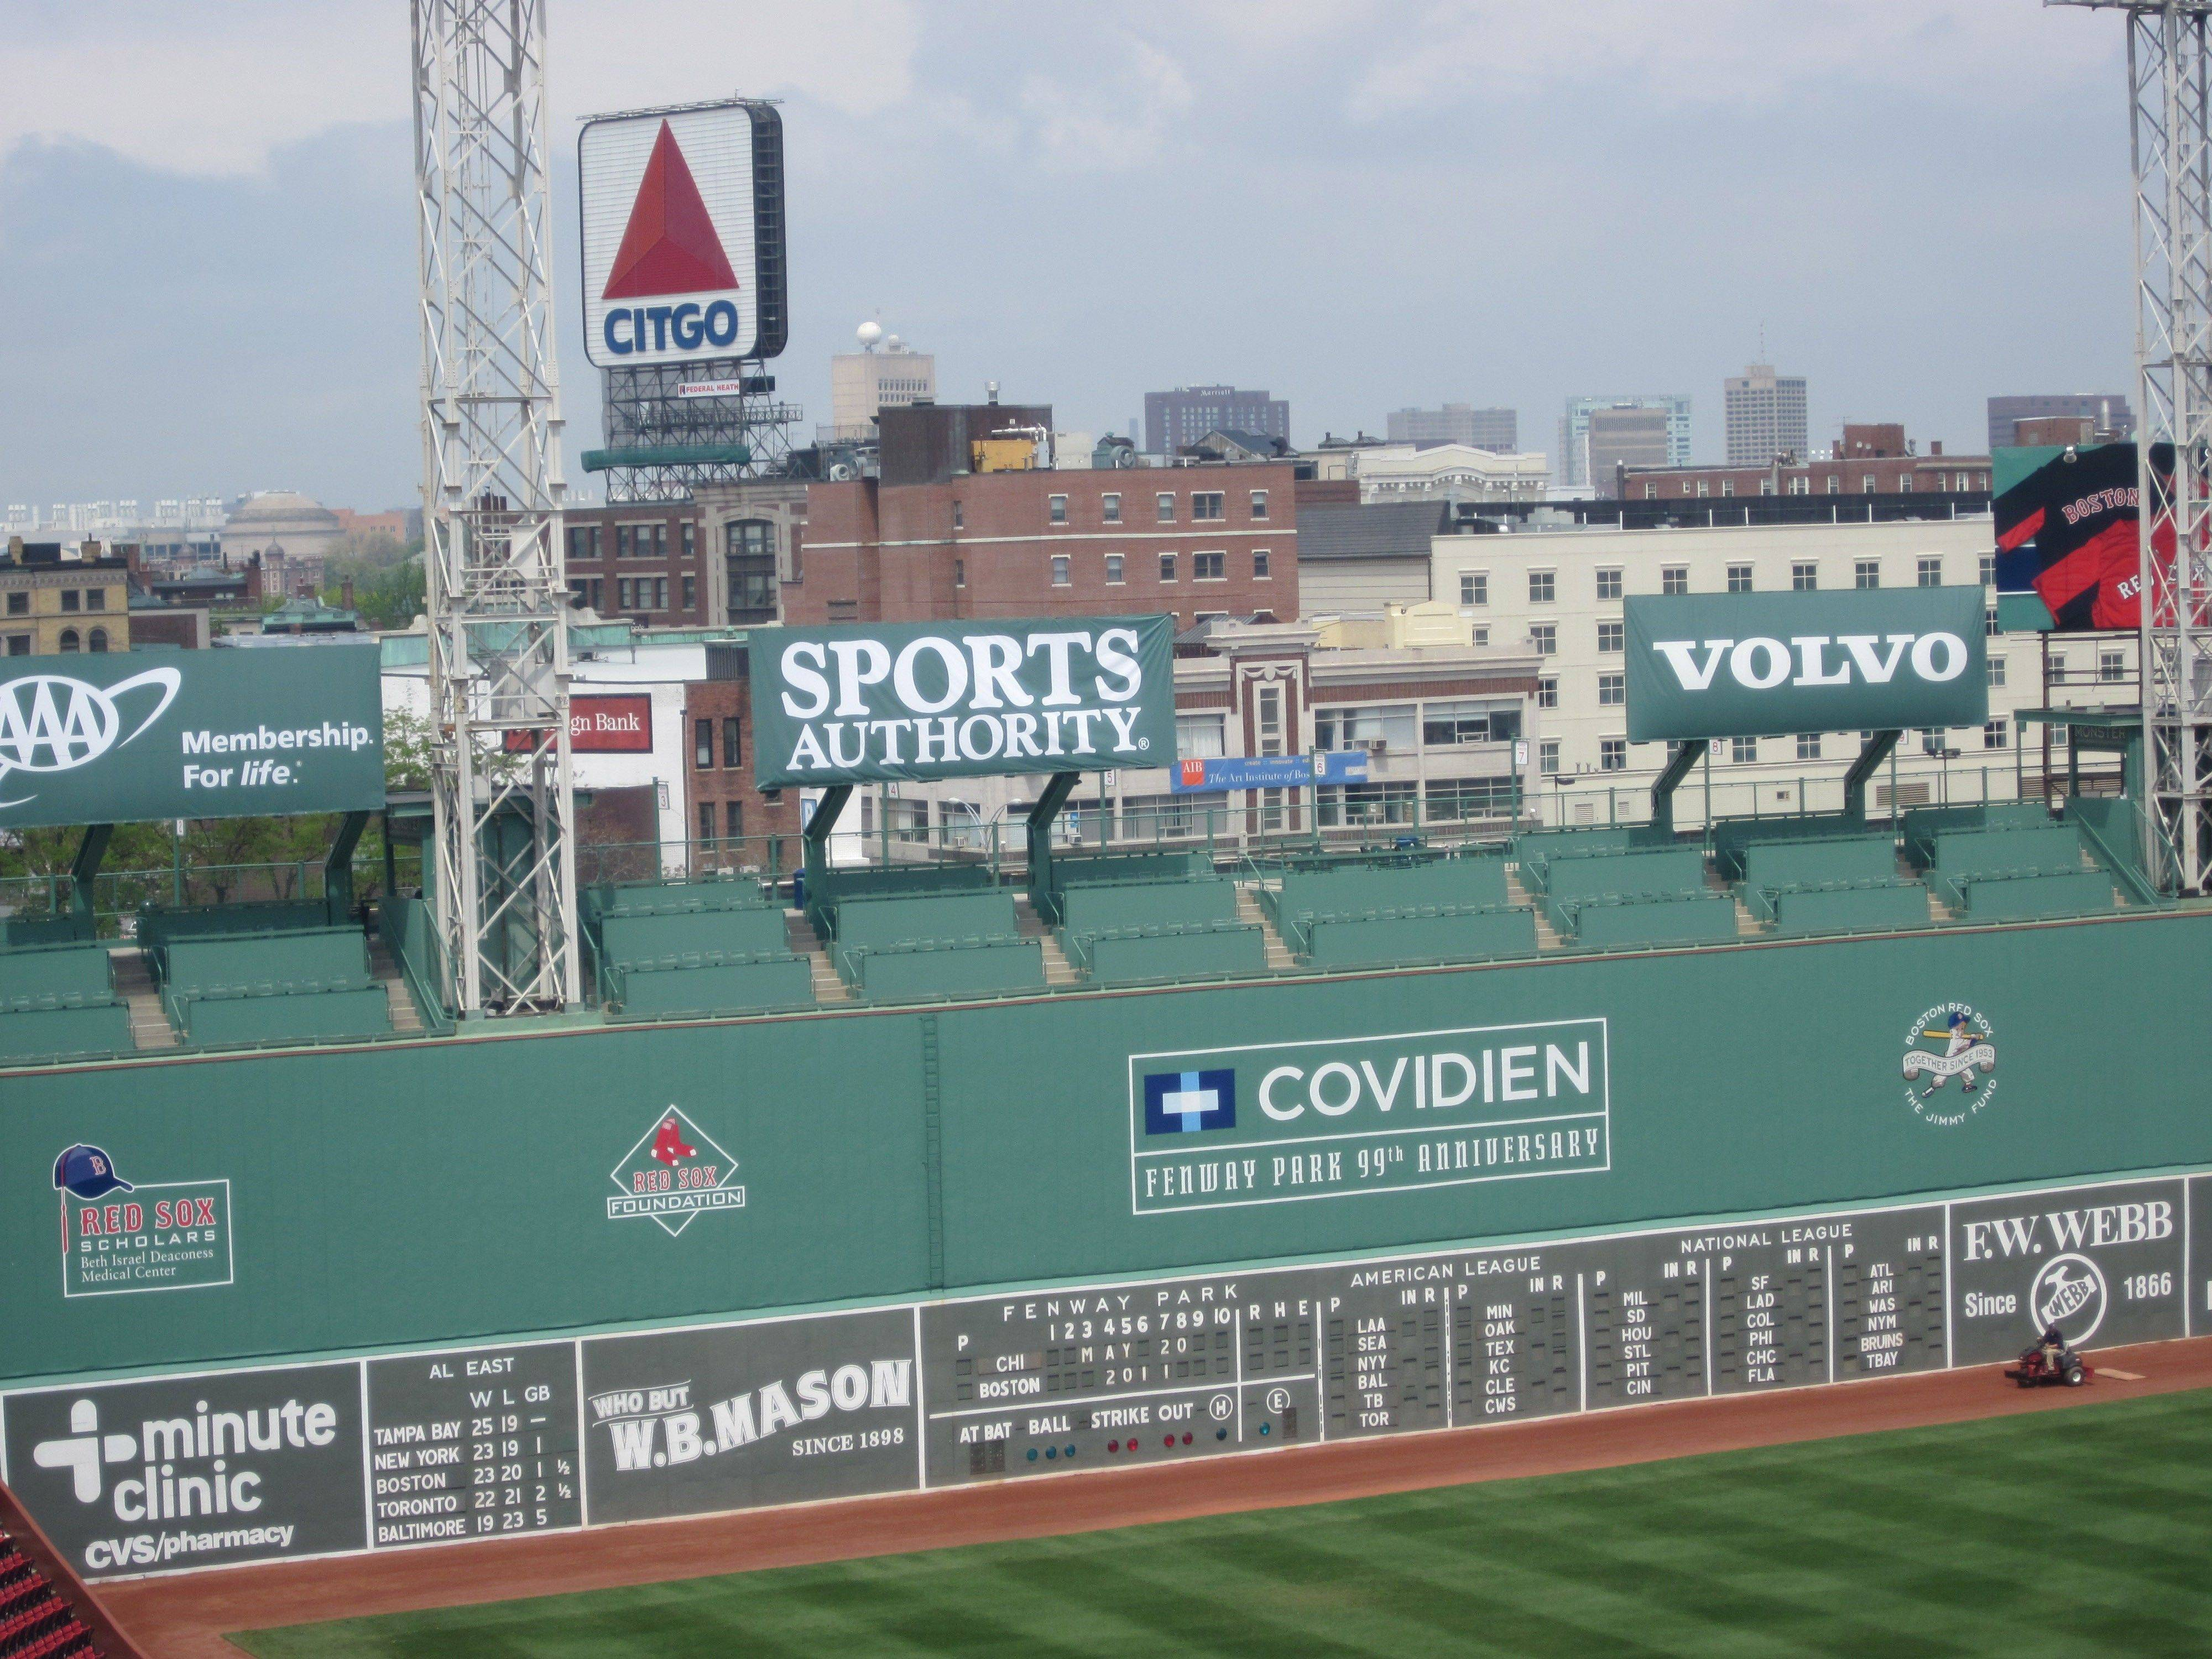 Here's a look at the Green Monster in Fenway Park, where the Cubs and Red Sox met on Friday, May 20, for the first time since the 1918 World Series.